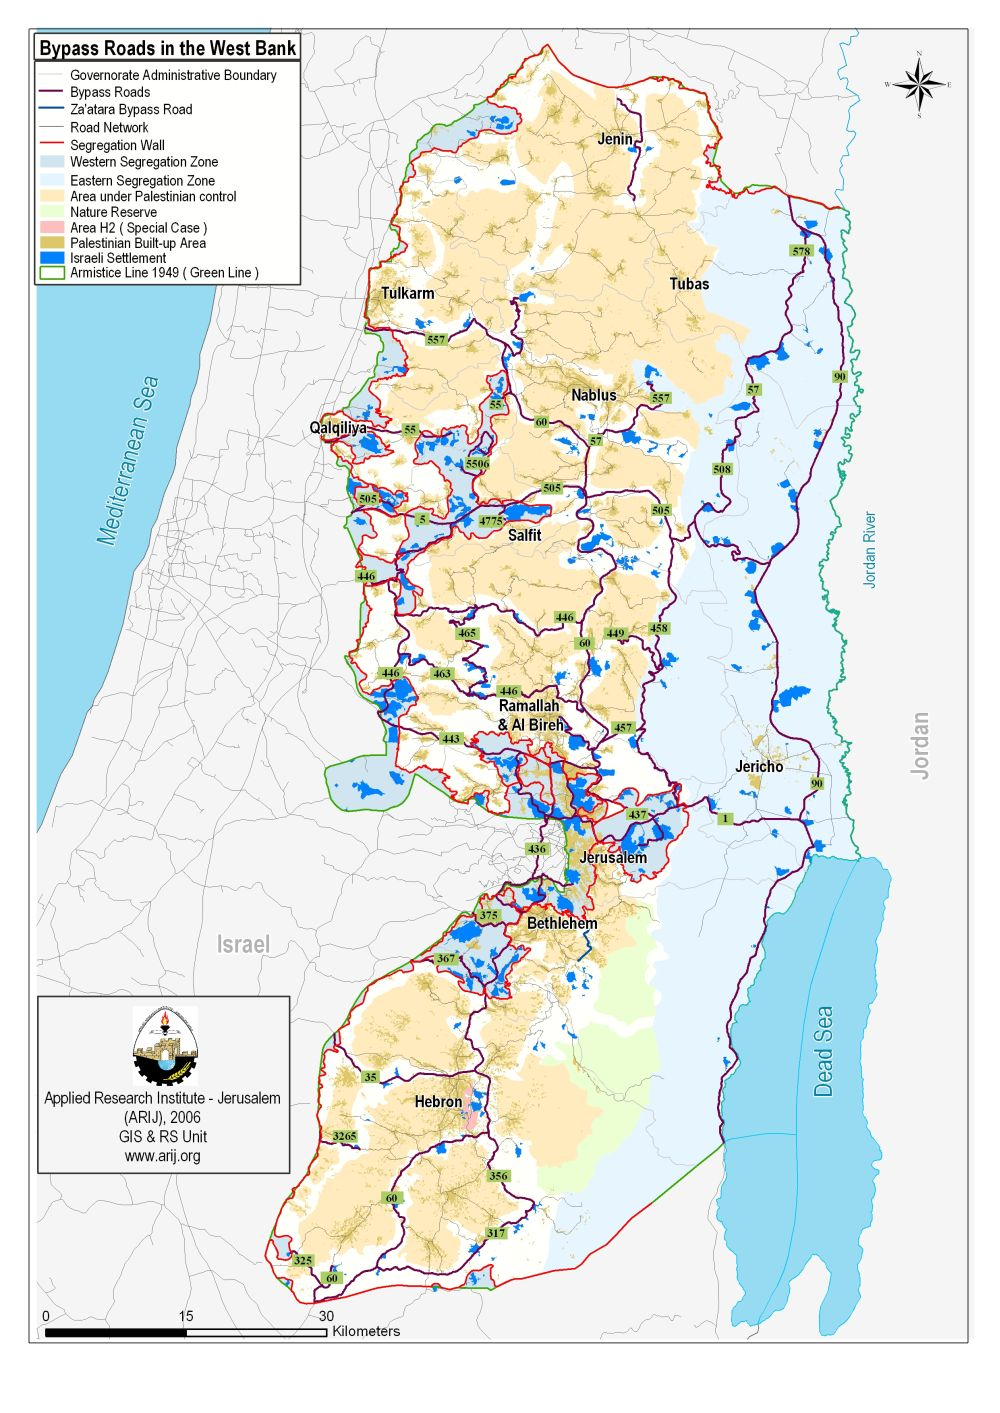 Map of the West Bank showing bypass roads and sequestration of the region.  For an interactive map see  B'Tselem's map .